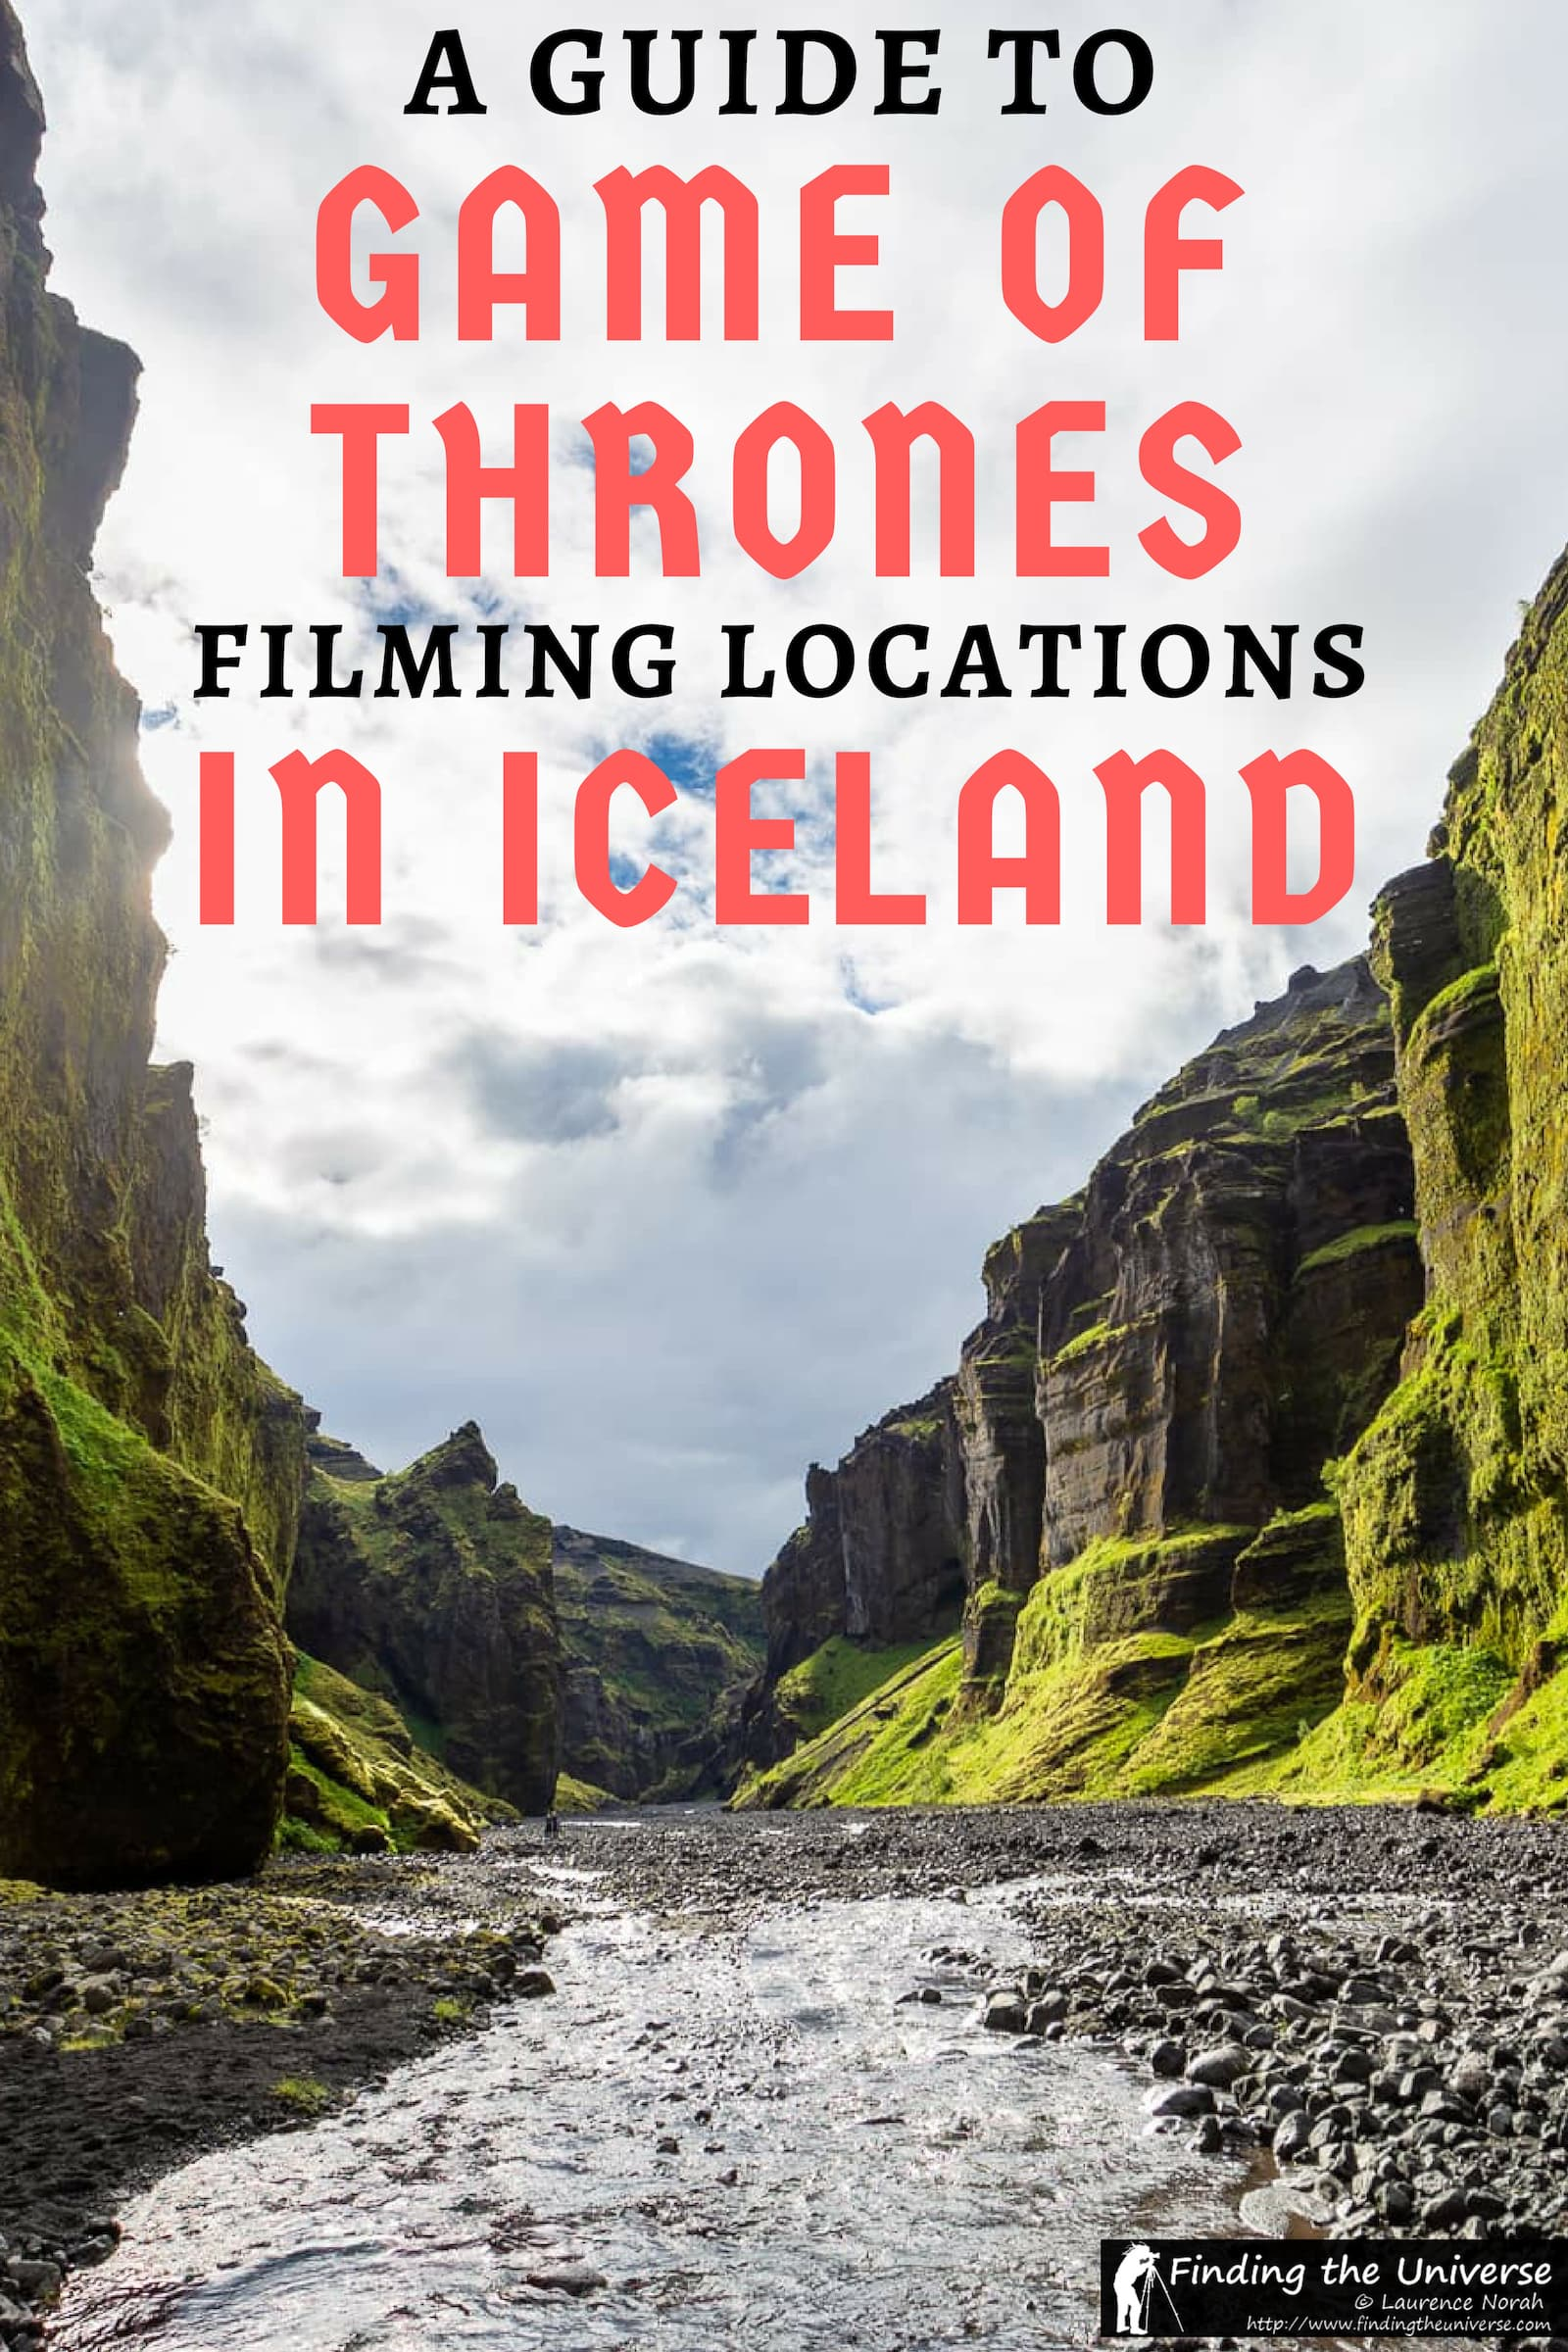 Game of Thrones in Iceland: A detailed guide to all the Game of Thrones filming locations in Iceland, Including how to get to each location